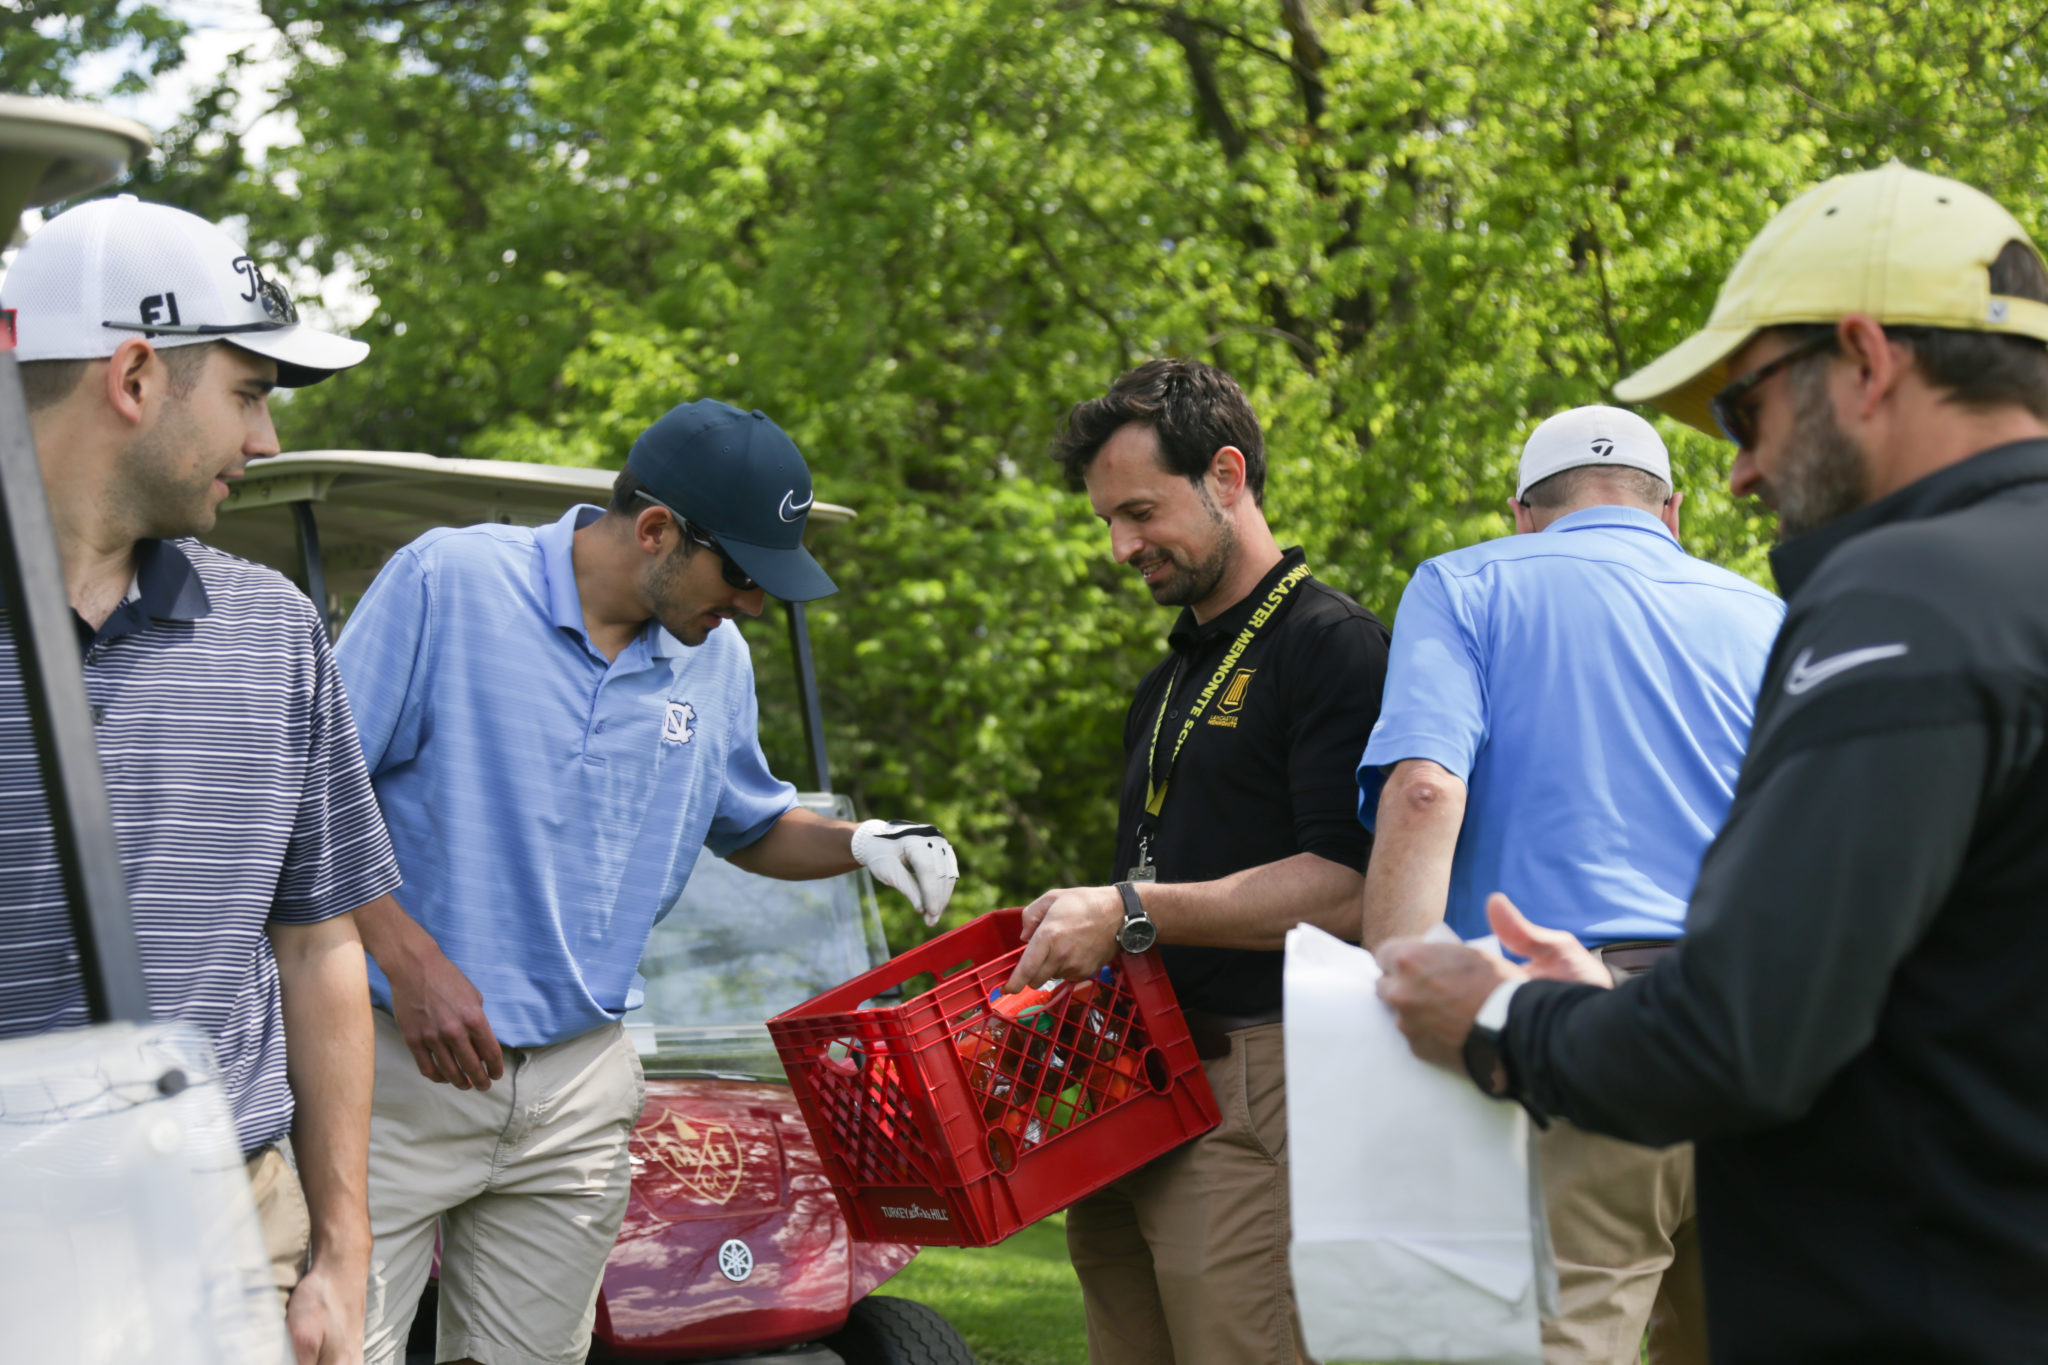 jon heinly handing out drinks at LM golf tournament